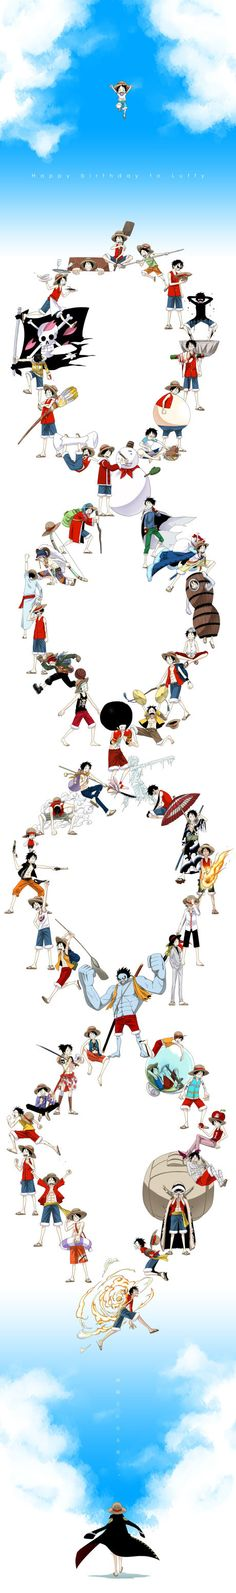 One Piece monkey D. Luffy THIS IS AMAZING! OMFG!